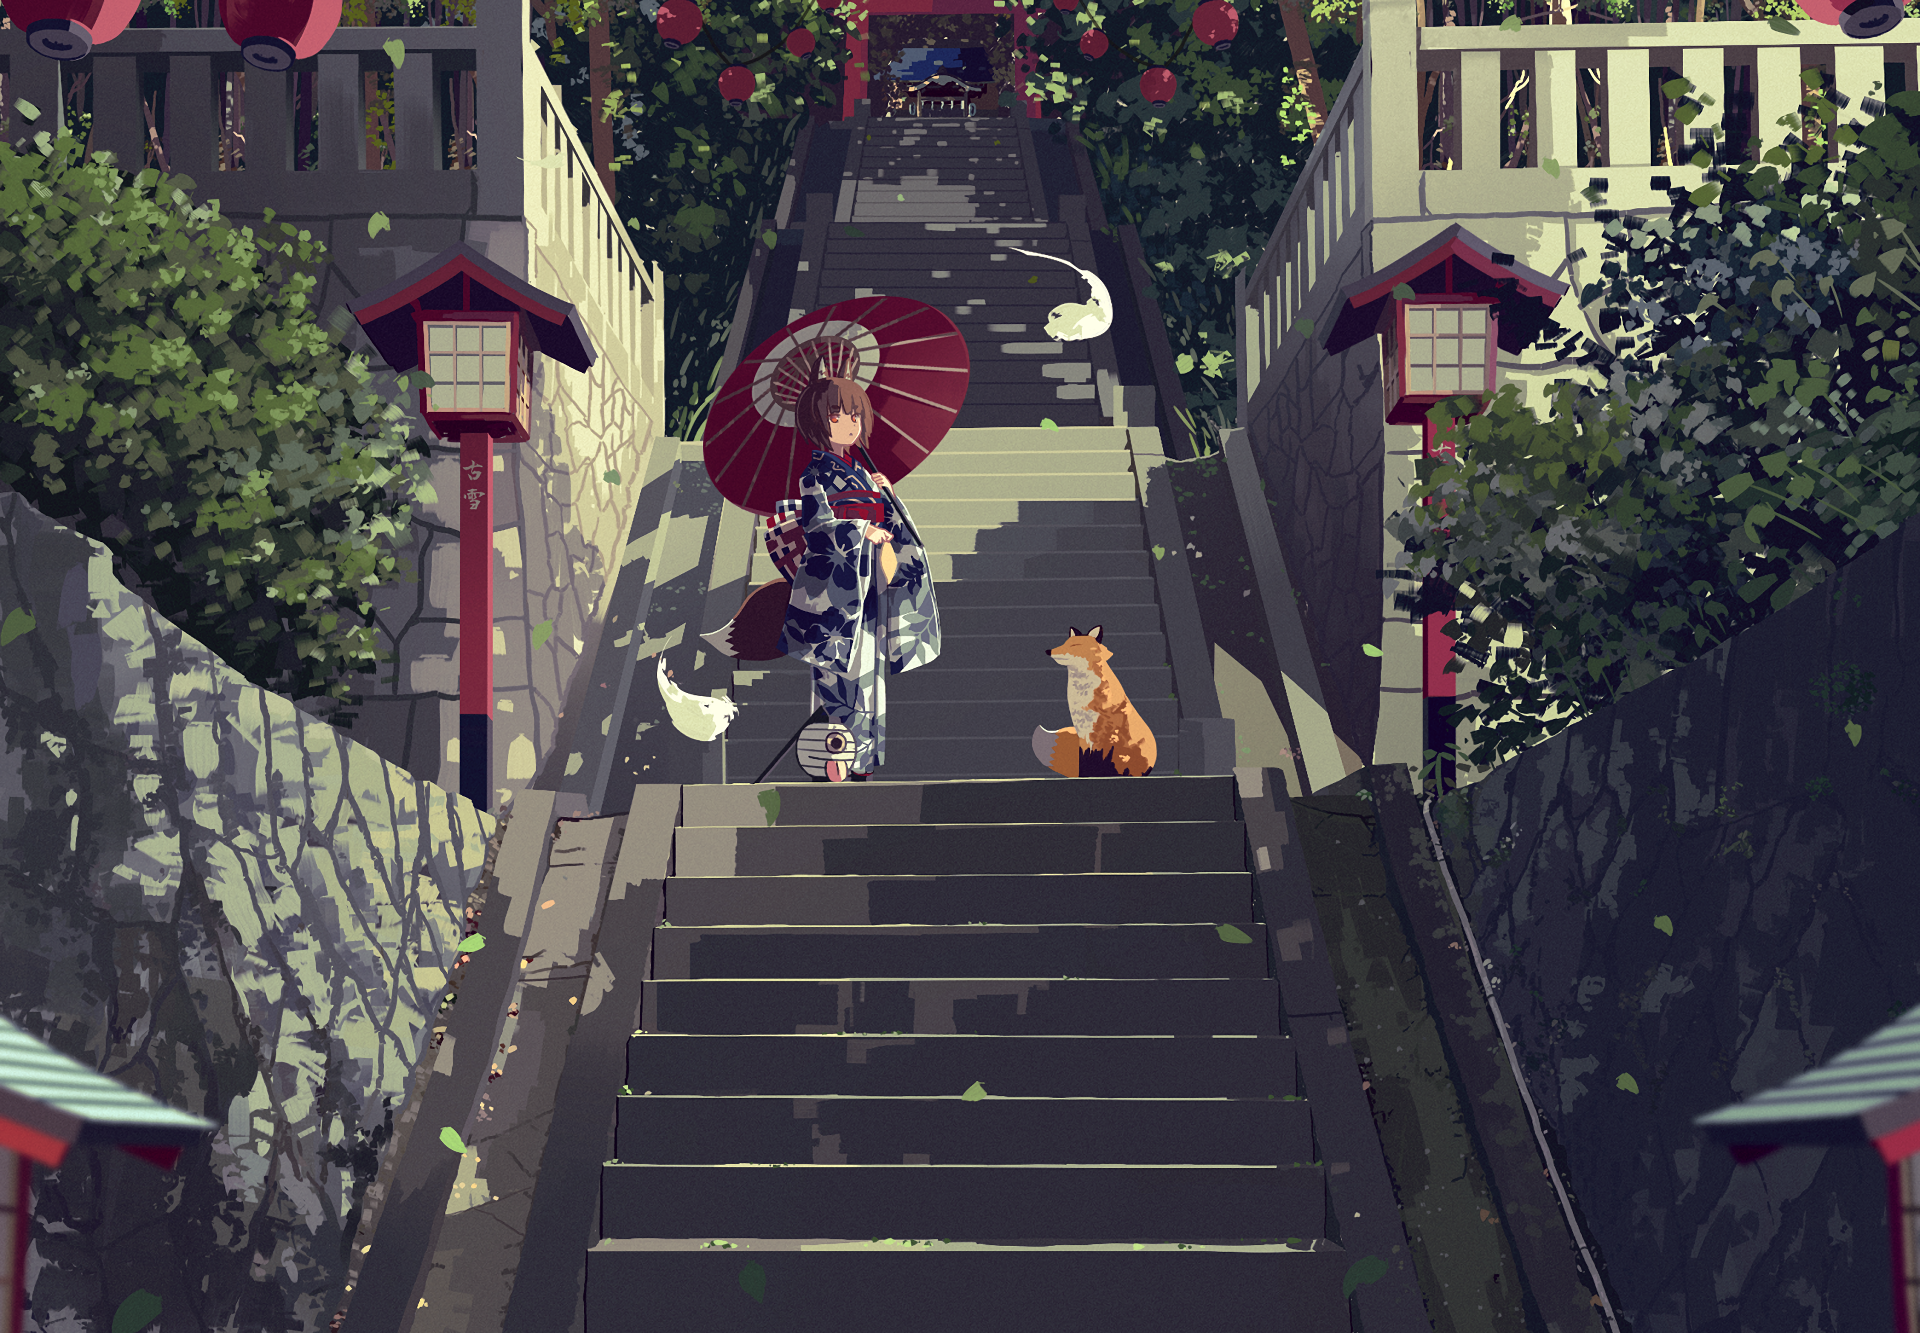 Anime - Original  Oriental Brown Hair Stairs Umbrella Spirit Orange Eyes Torii Short Hair Girl Kimono Animal Ears Fox Animal Wallpaper